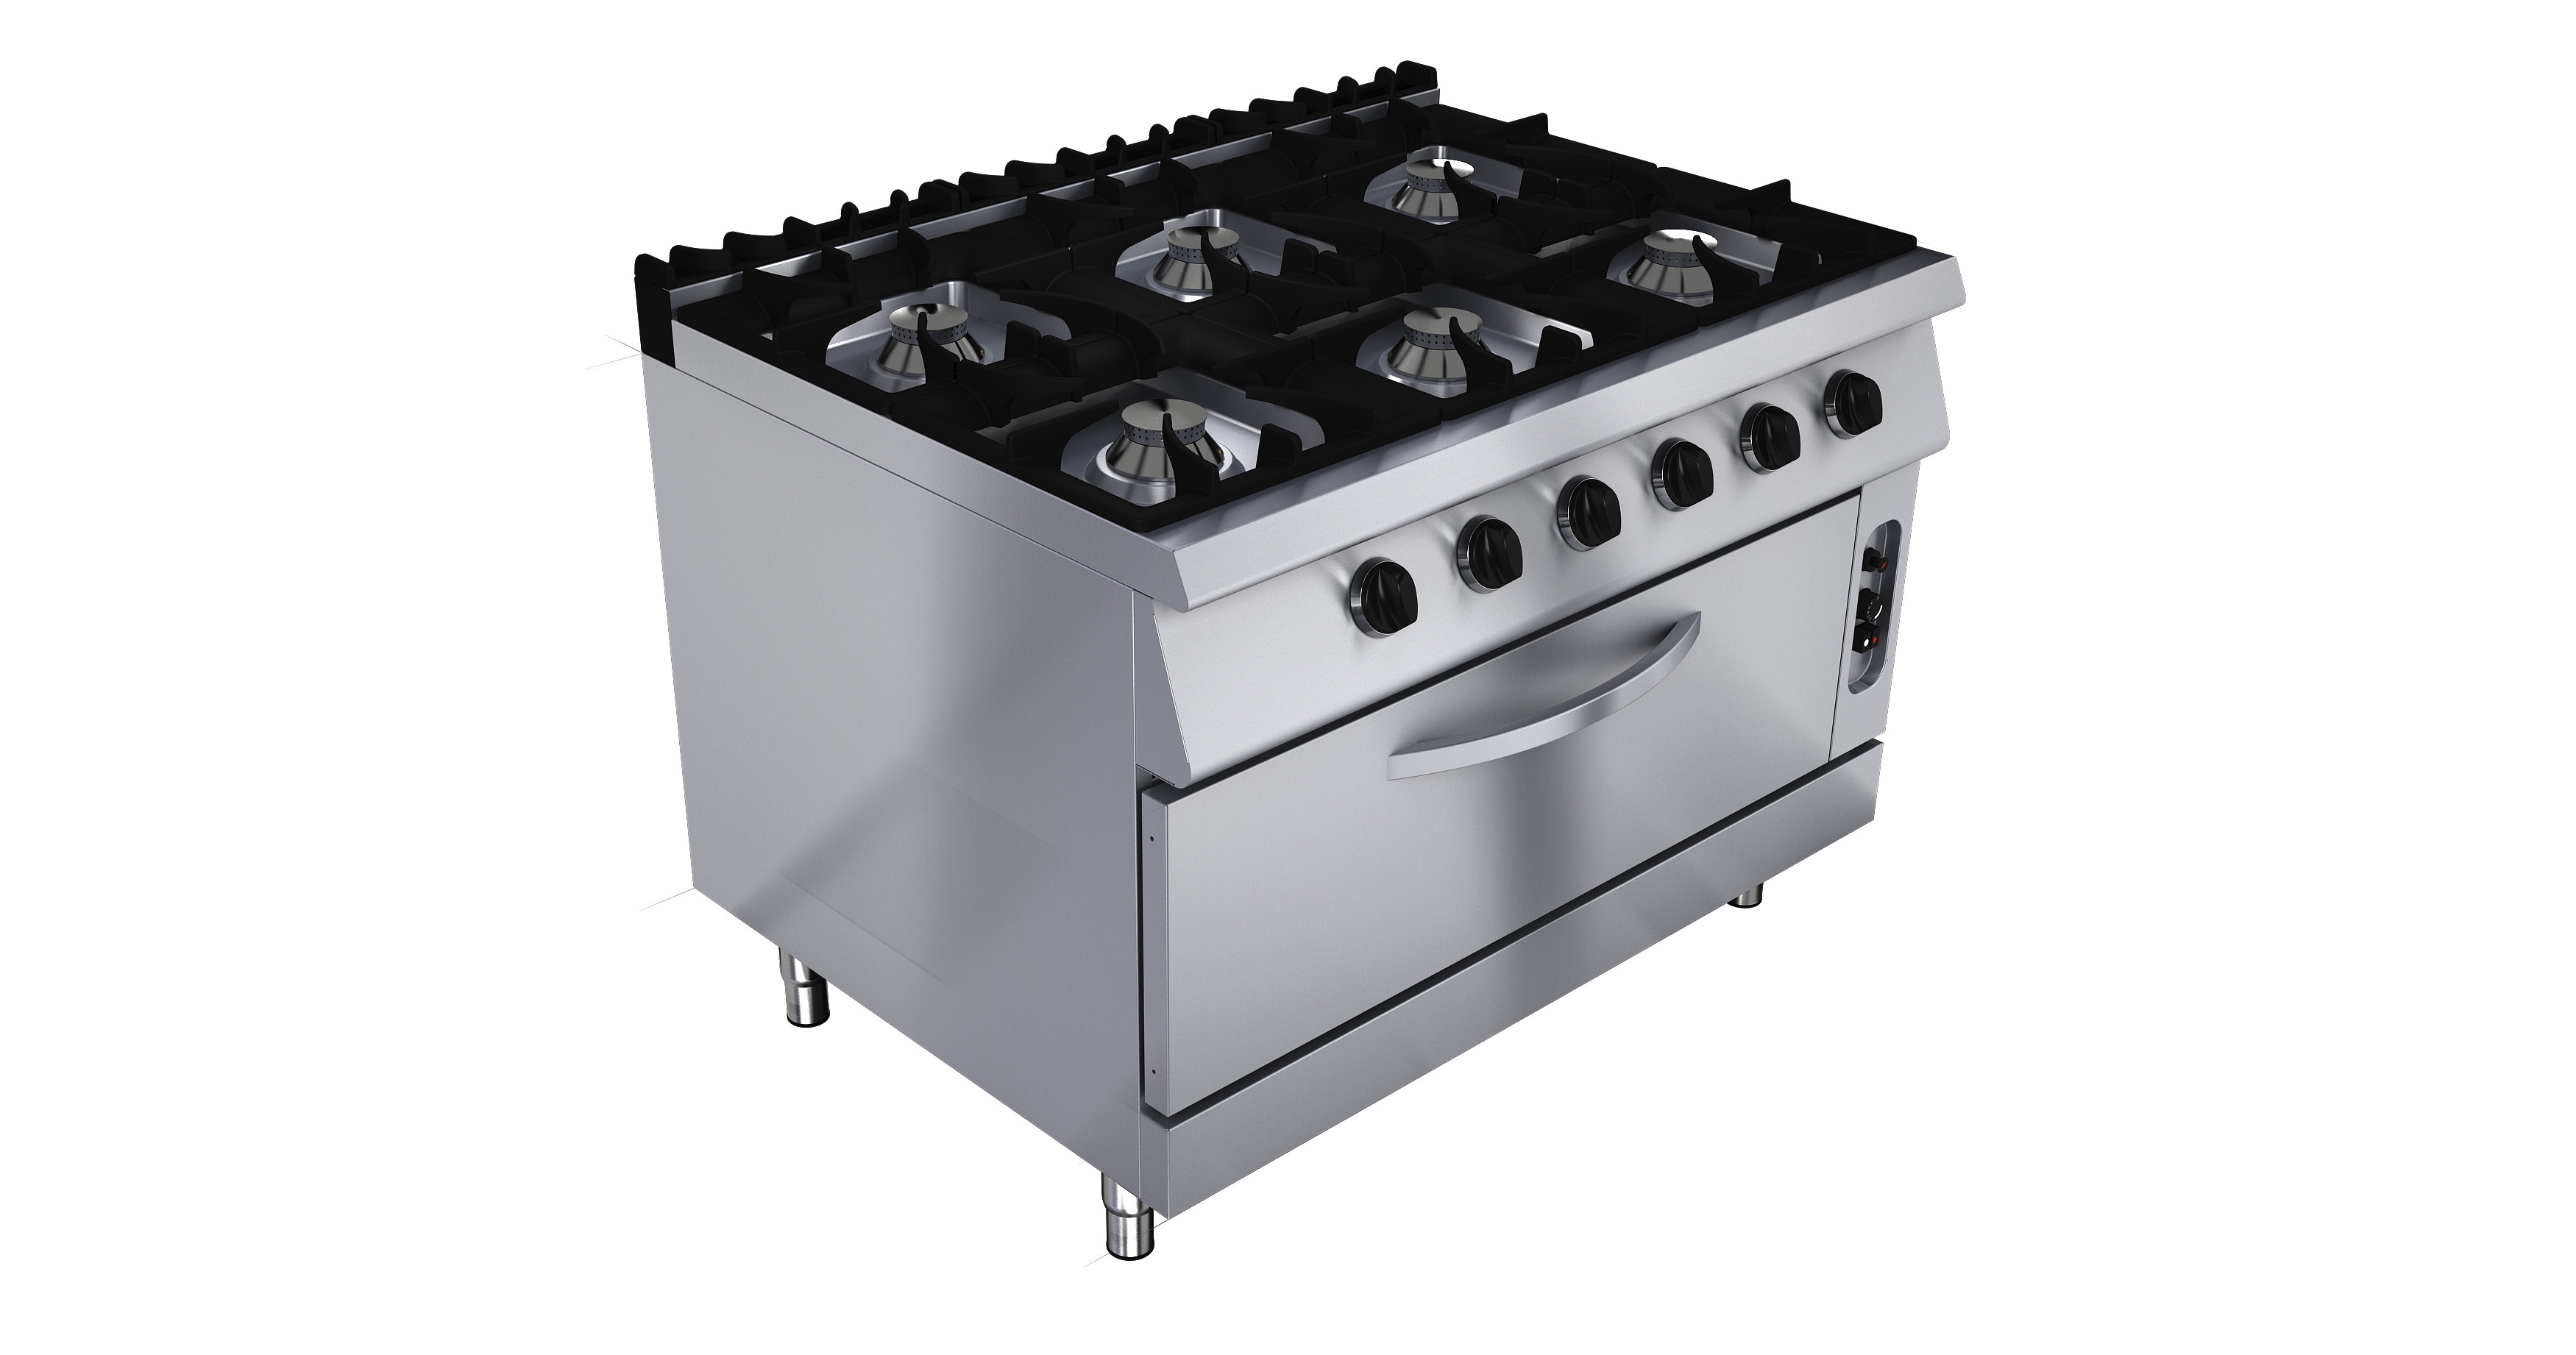 New heavy duty 700 Series ranges and boiling tops from rexmartins